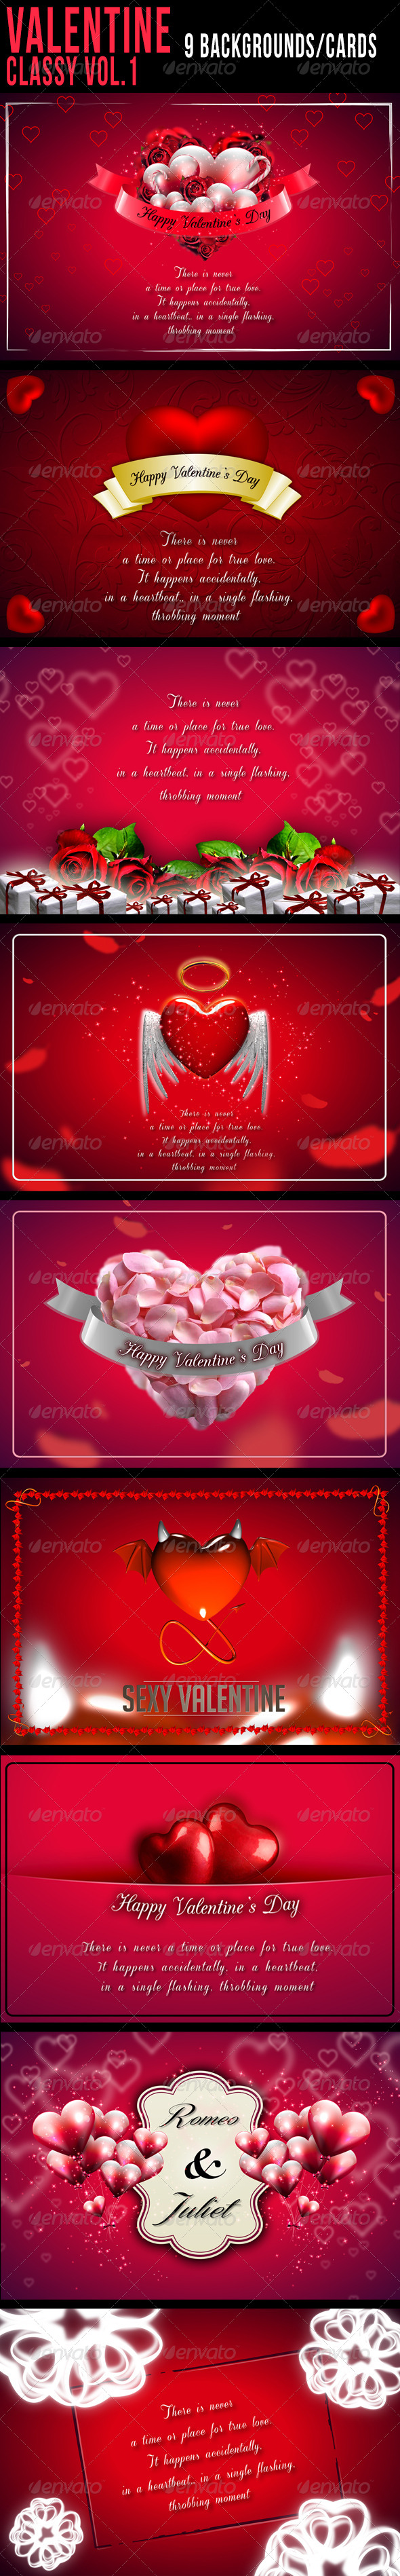 GraphicRiver Valentine Backgrounds Cards Classy Vol.1 6515166